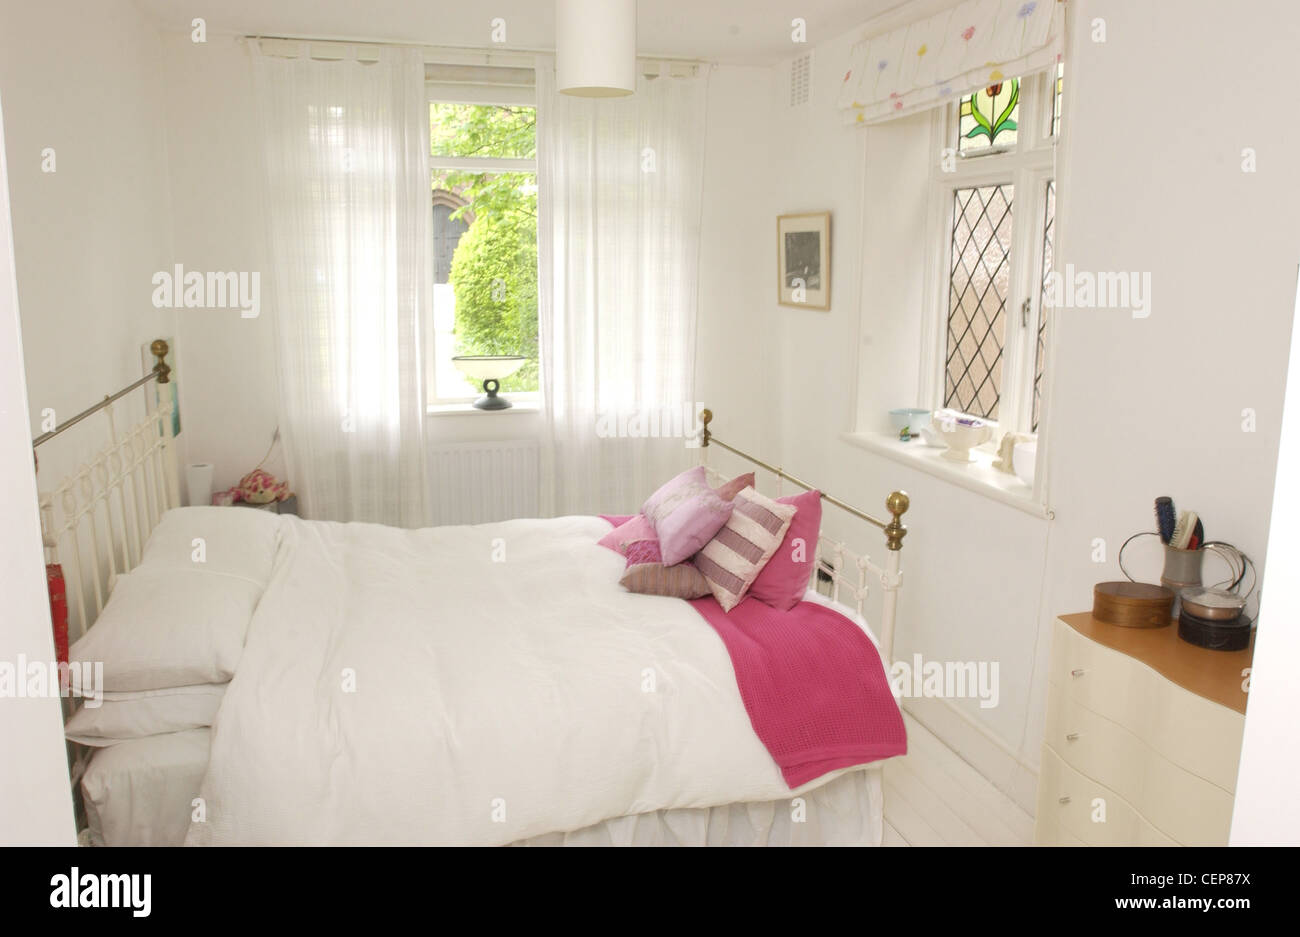 Renovated Flat Interiimage of bedroom iron bed pink cushions ...